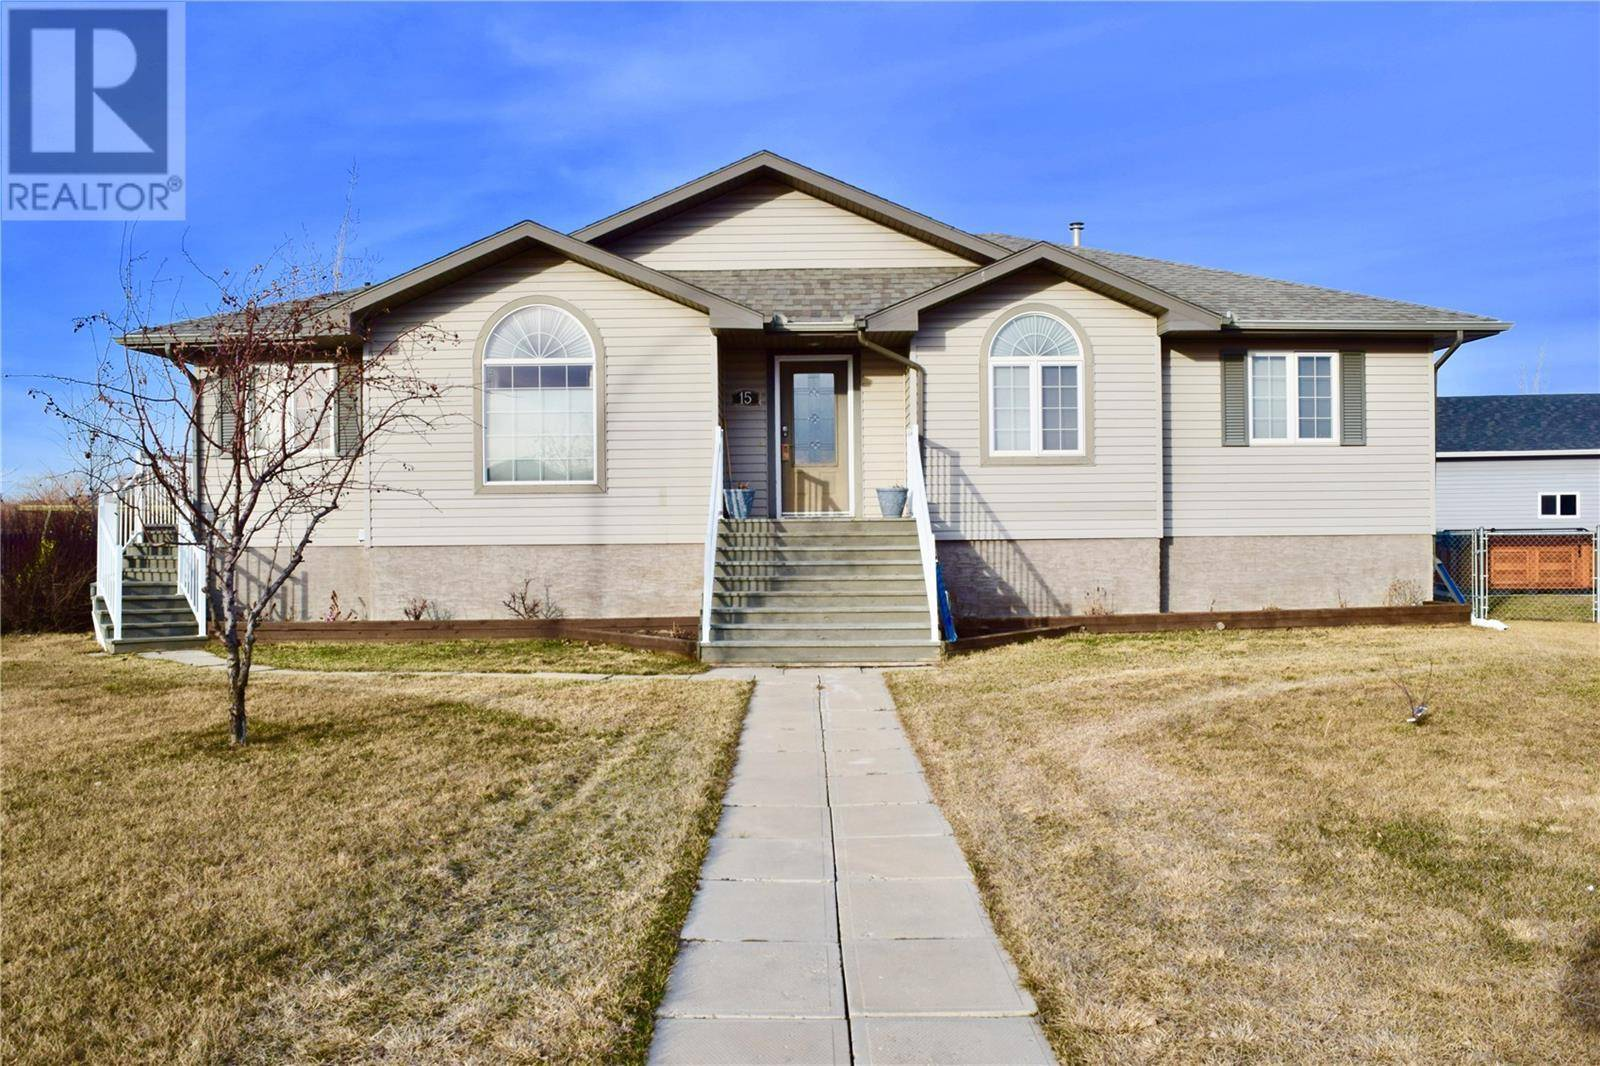 House for sale at 15 Manor By Carlyle Saskatchewan - MLS: SK765902